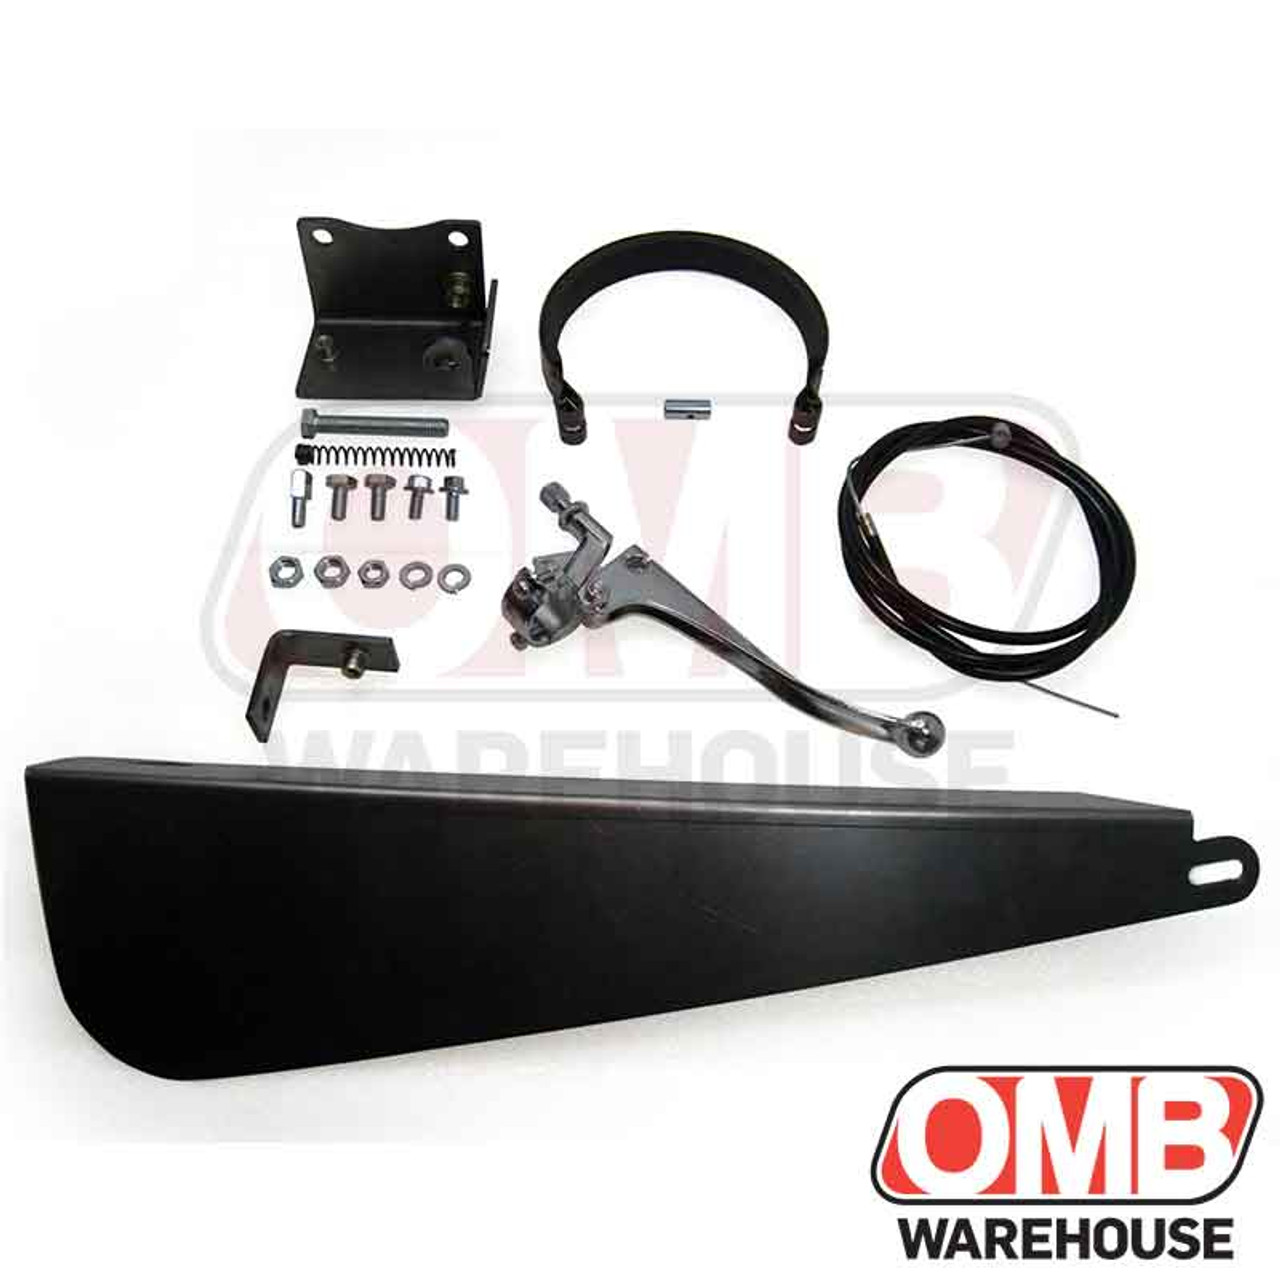 """Clutch Brake and 7/8"""" Brake Lever Kit with ARCO Long Cover Combo"""